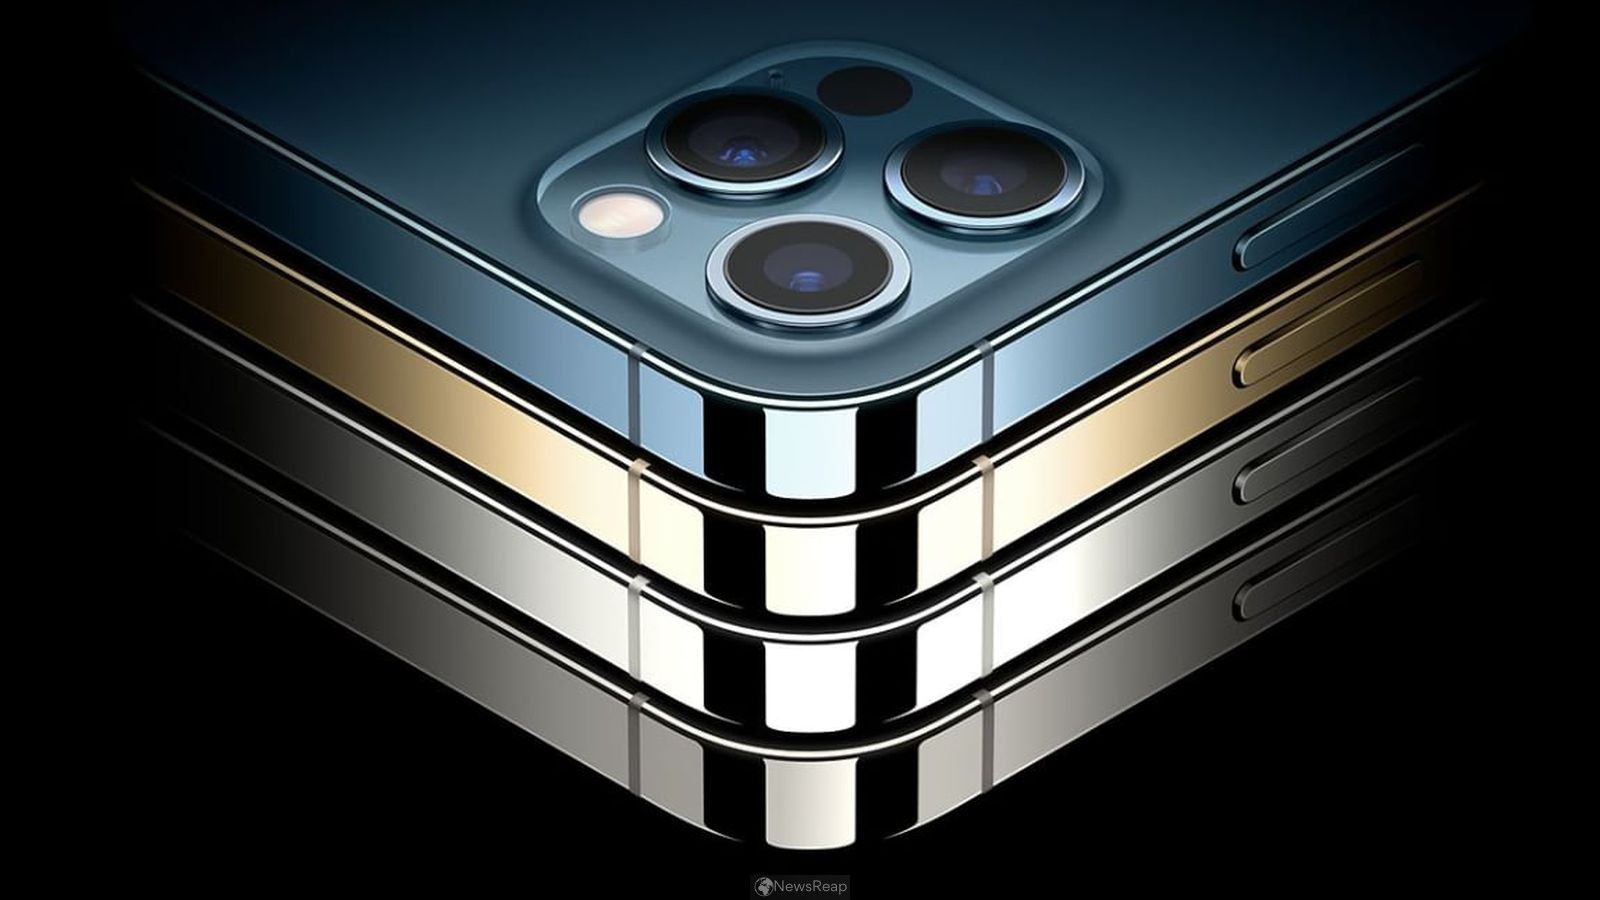 Apple iPhone 13 is expected to feature a 6P Auto Focus lens, as claimed